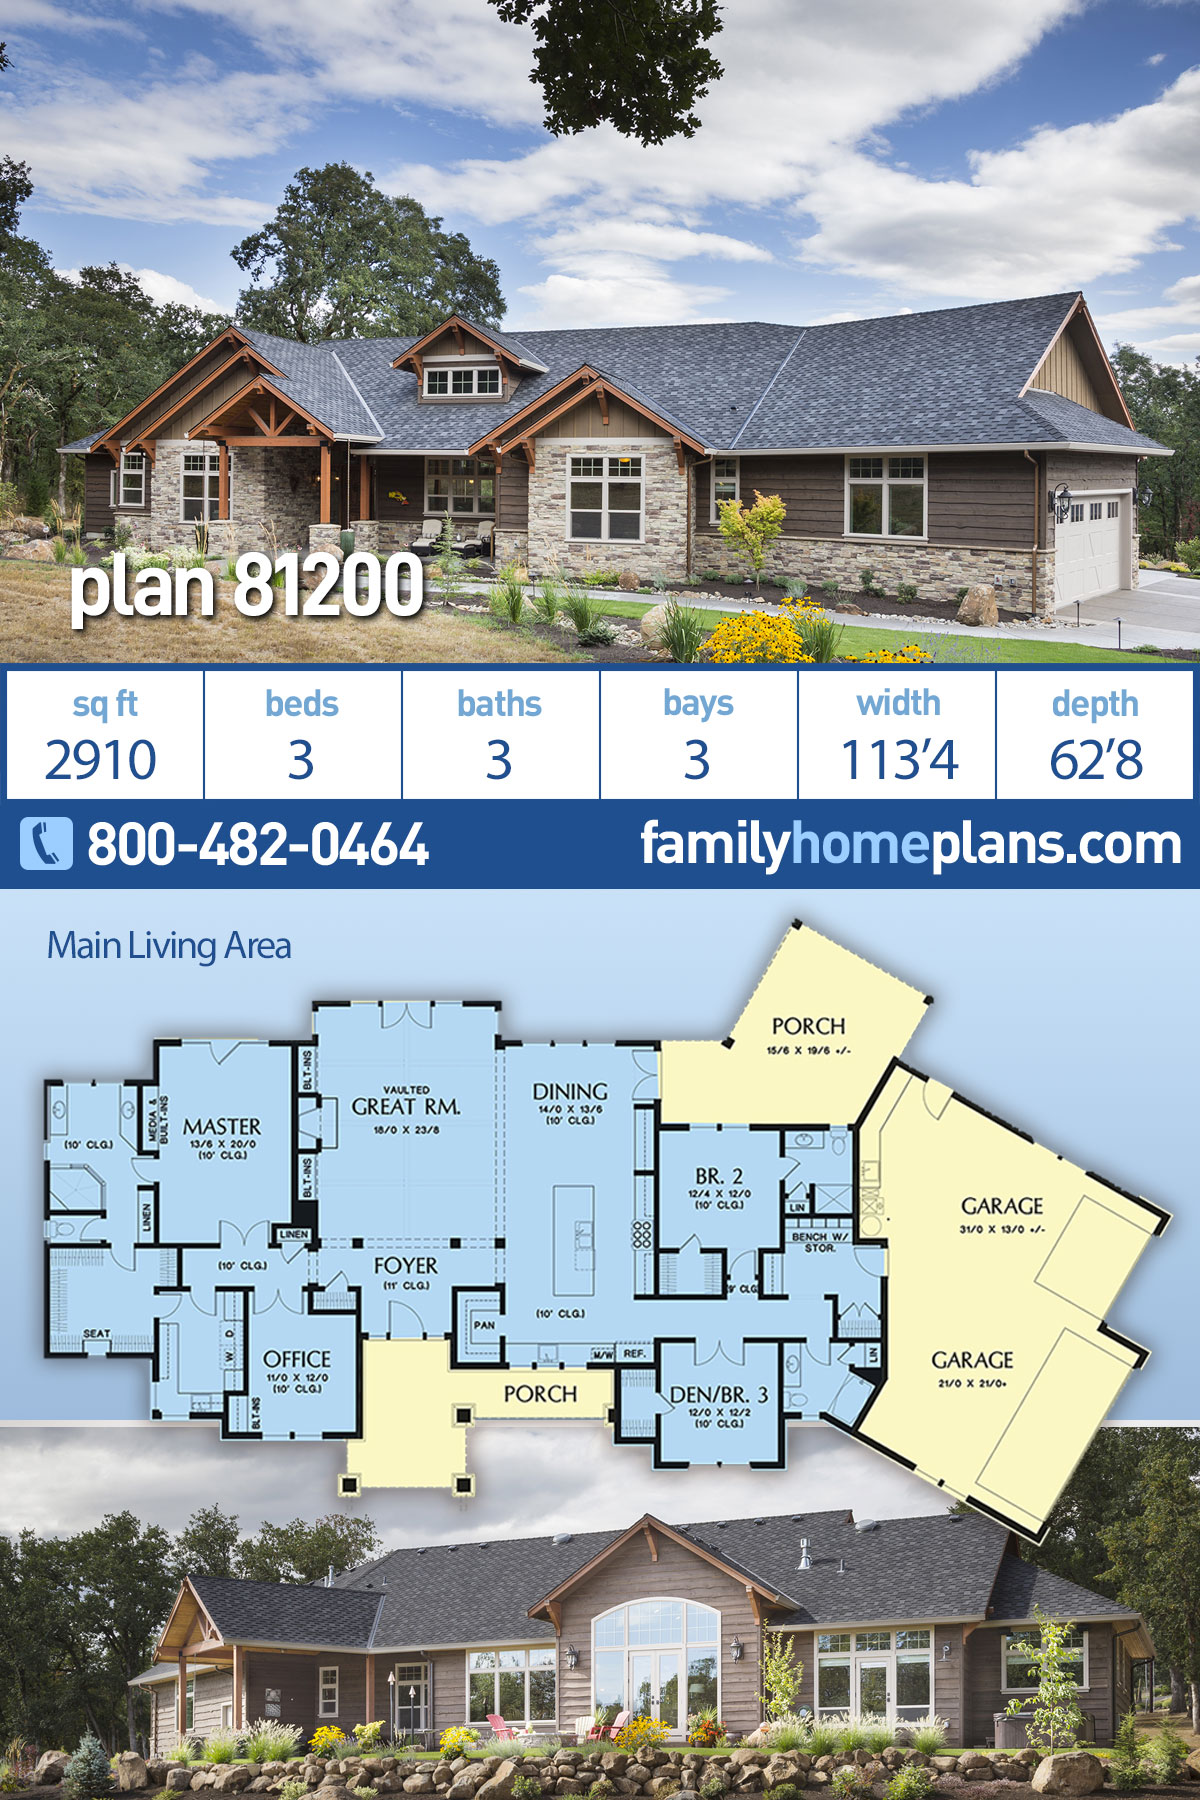 Craftsman , Ranch House Plan 81200 with 3 Beds, 3 Baths, 3 Car Garage